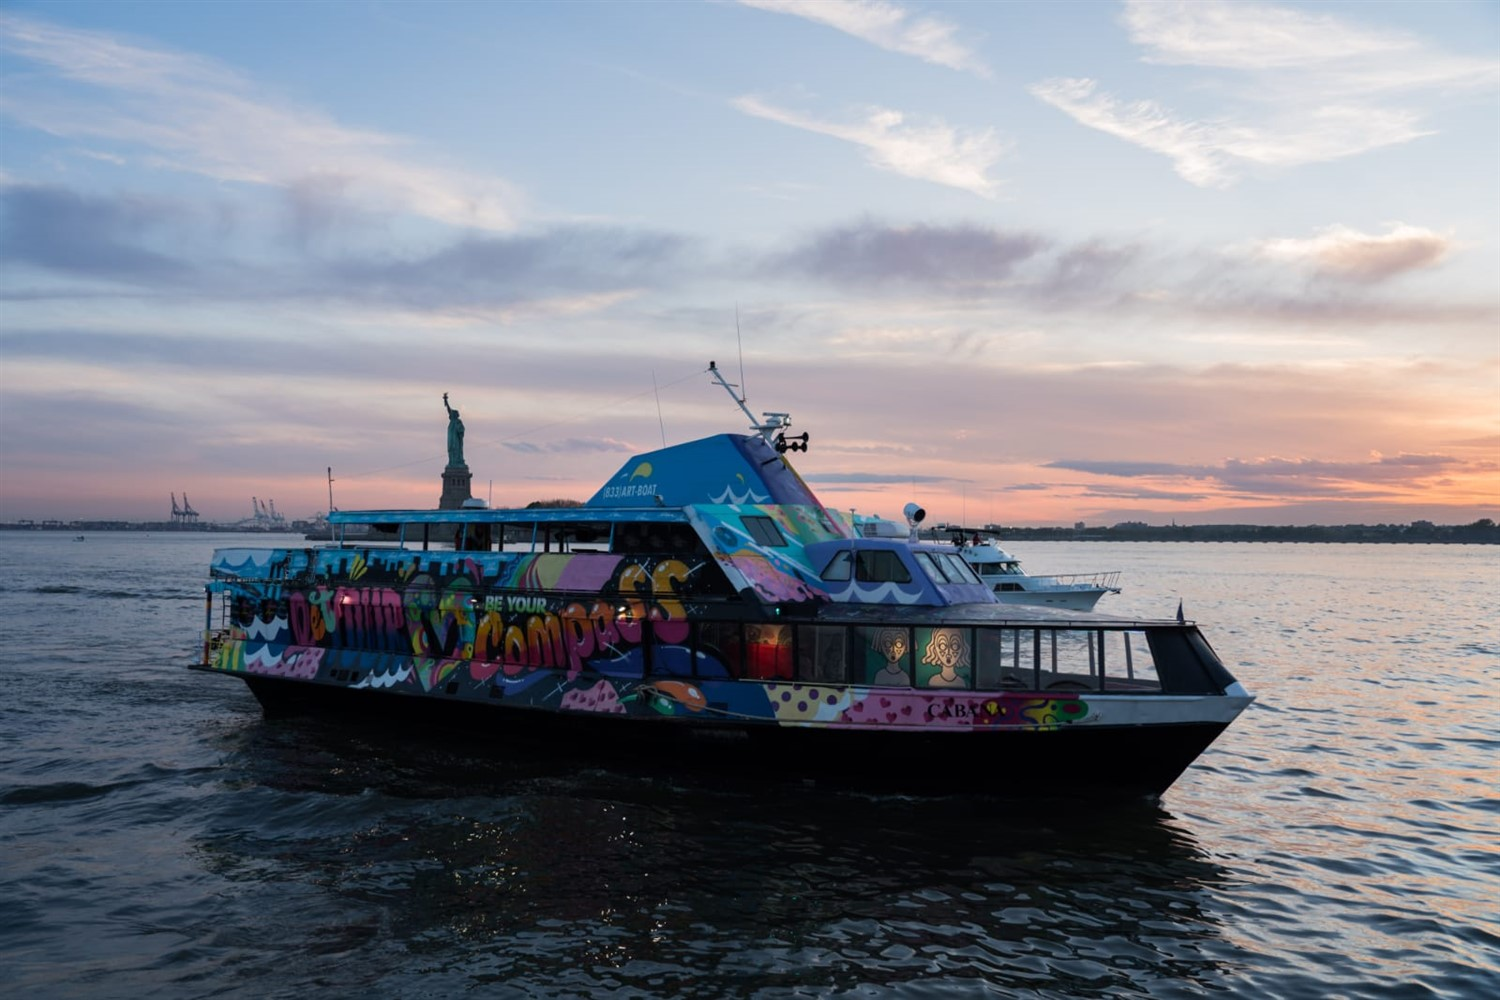 NYC Summer Sunset Cruise Hip Hop vs Reggae® Yacht Party NYC Summer Sunset Cruise Hip Hop vs Reggae® Yacht Party on Jun 18, 18:00@Skyport Marina - Buy tickets and Get information on GametightNY